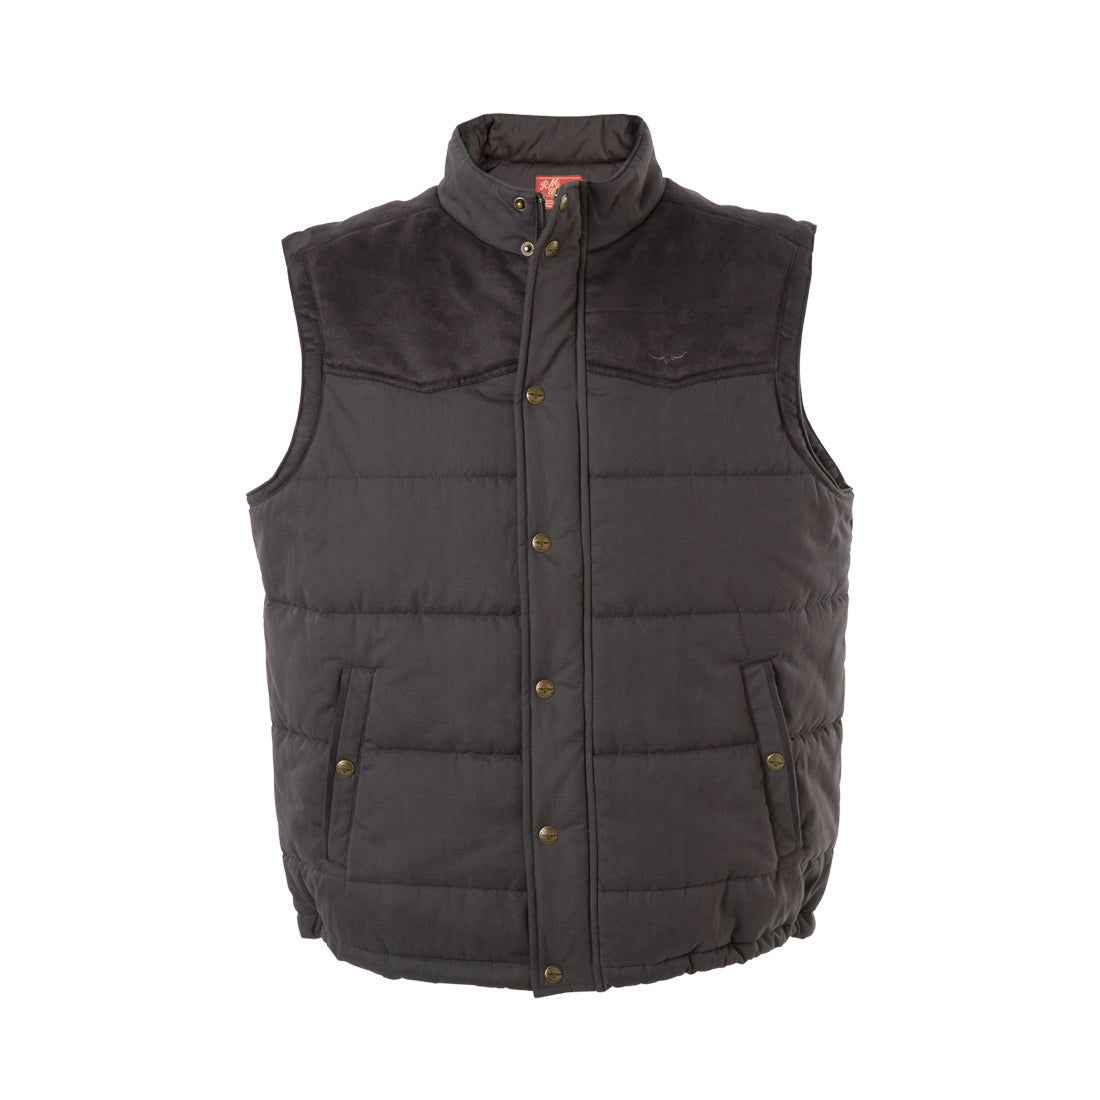 R.M.Williams Carnarvon Vest